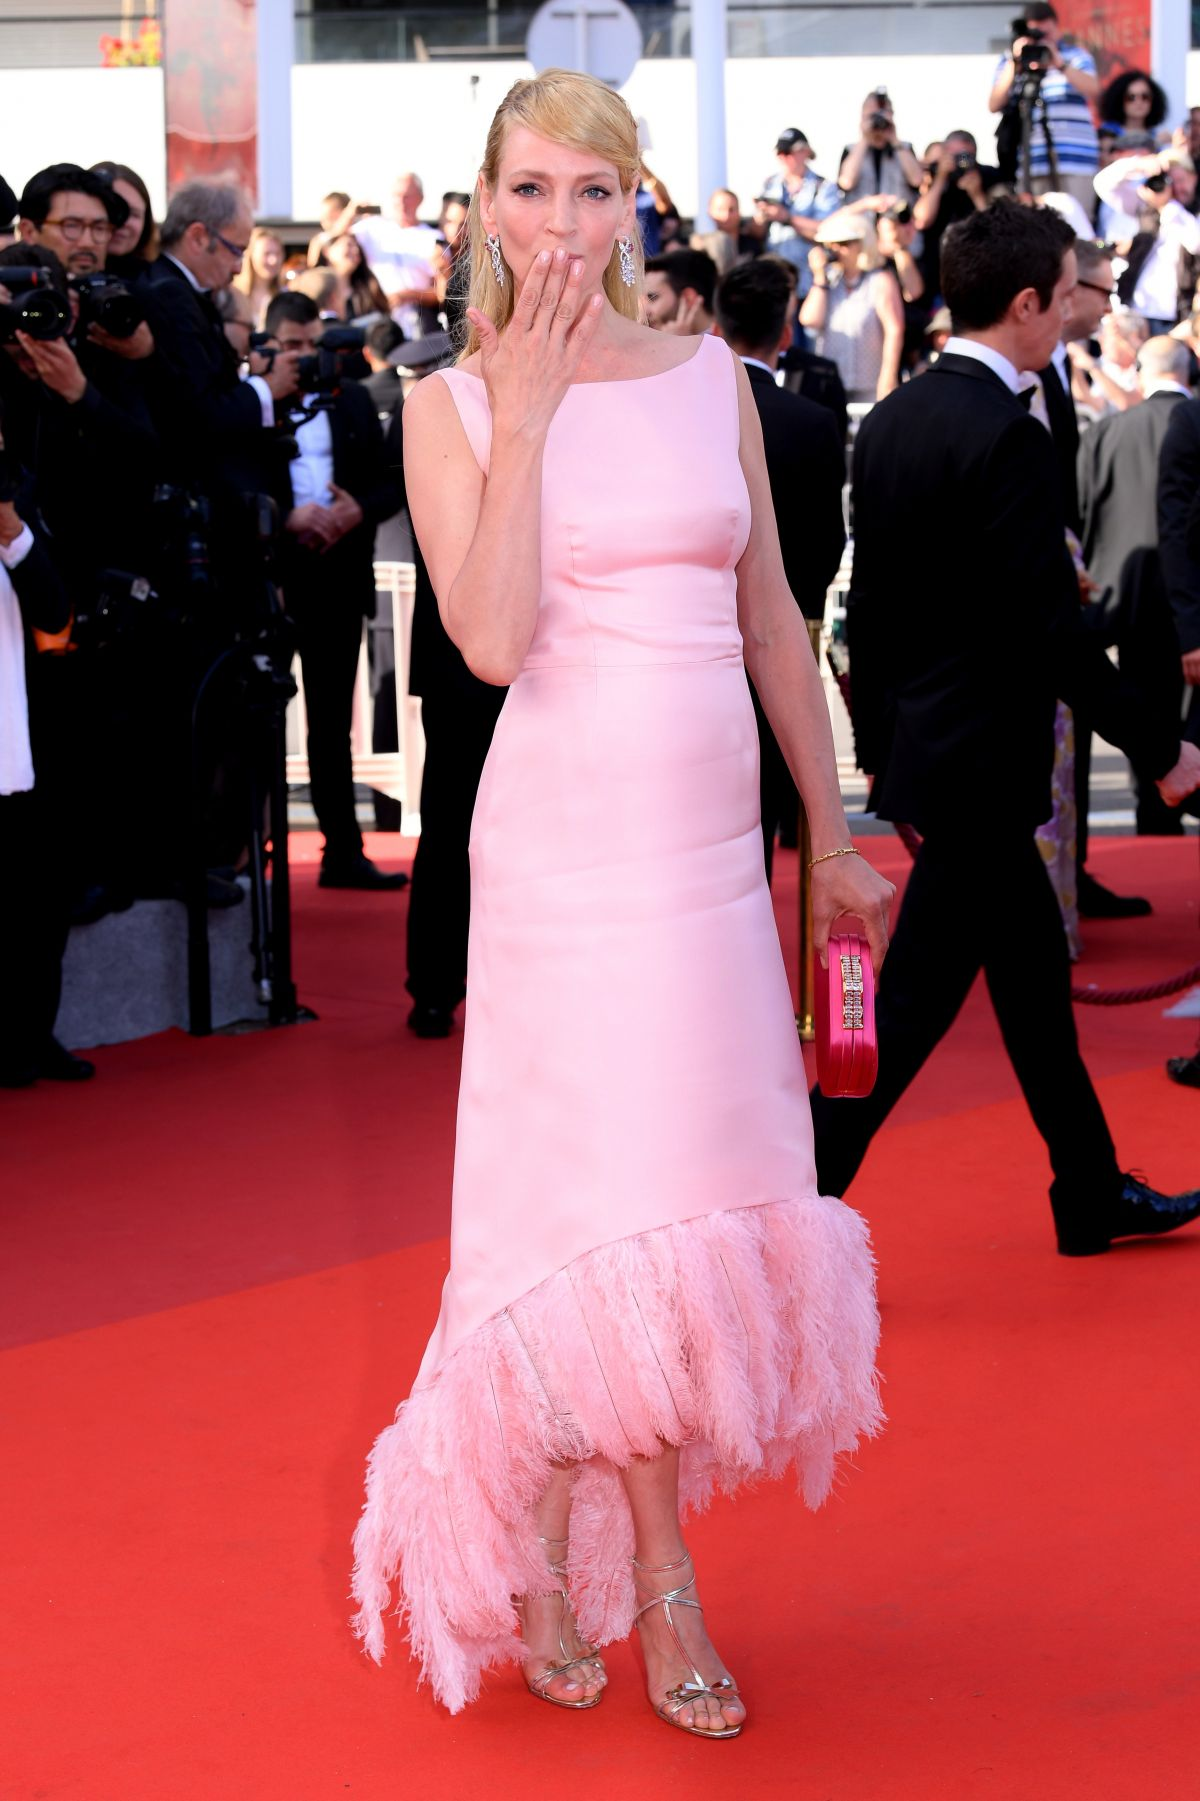 Cannes 2017 Heidi Klum Continues A Cannes Tradition In: UMA THURMAN At Anniversary Soiree At 70th Annual Cannes